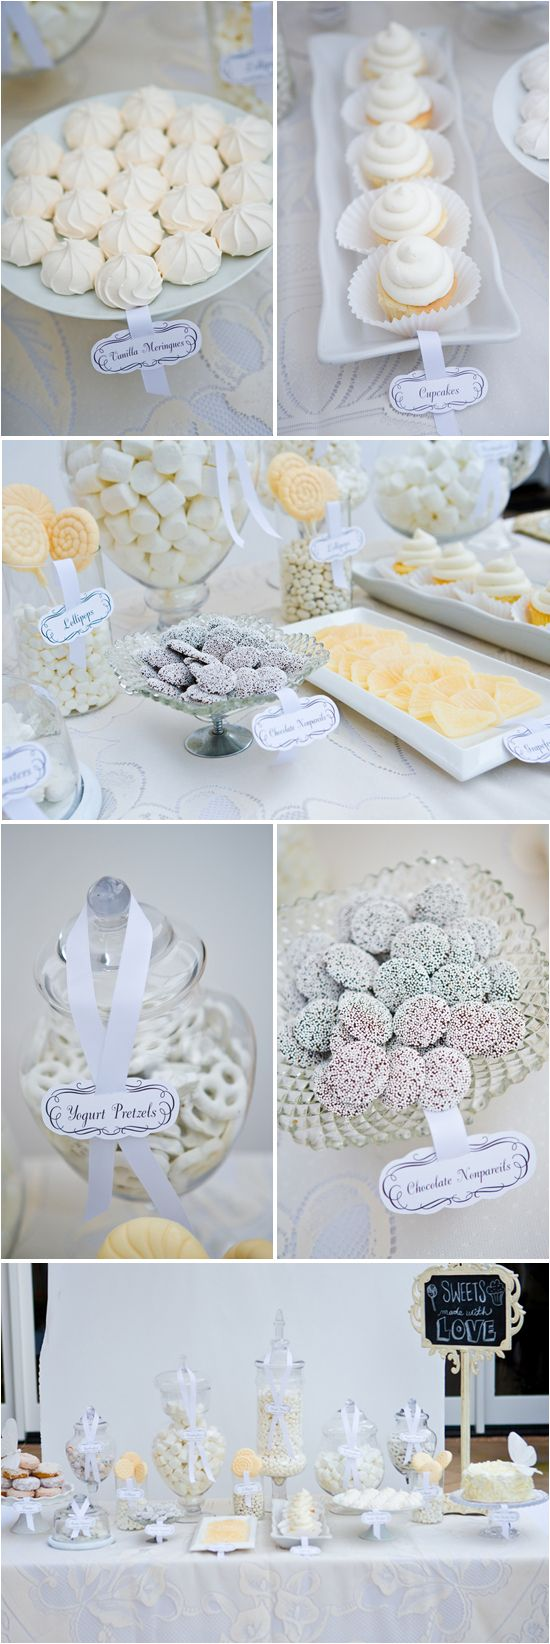 Southern Blue Celebrations: White / Cream / Ivory Candy & Dessert Tables